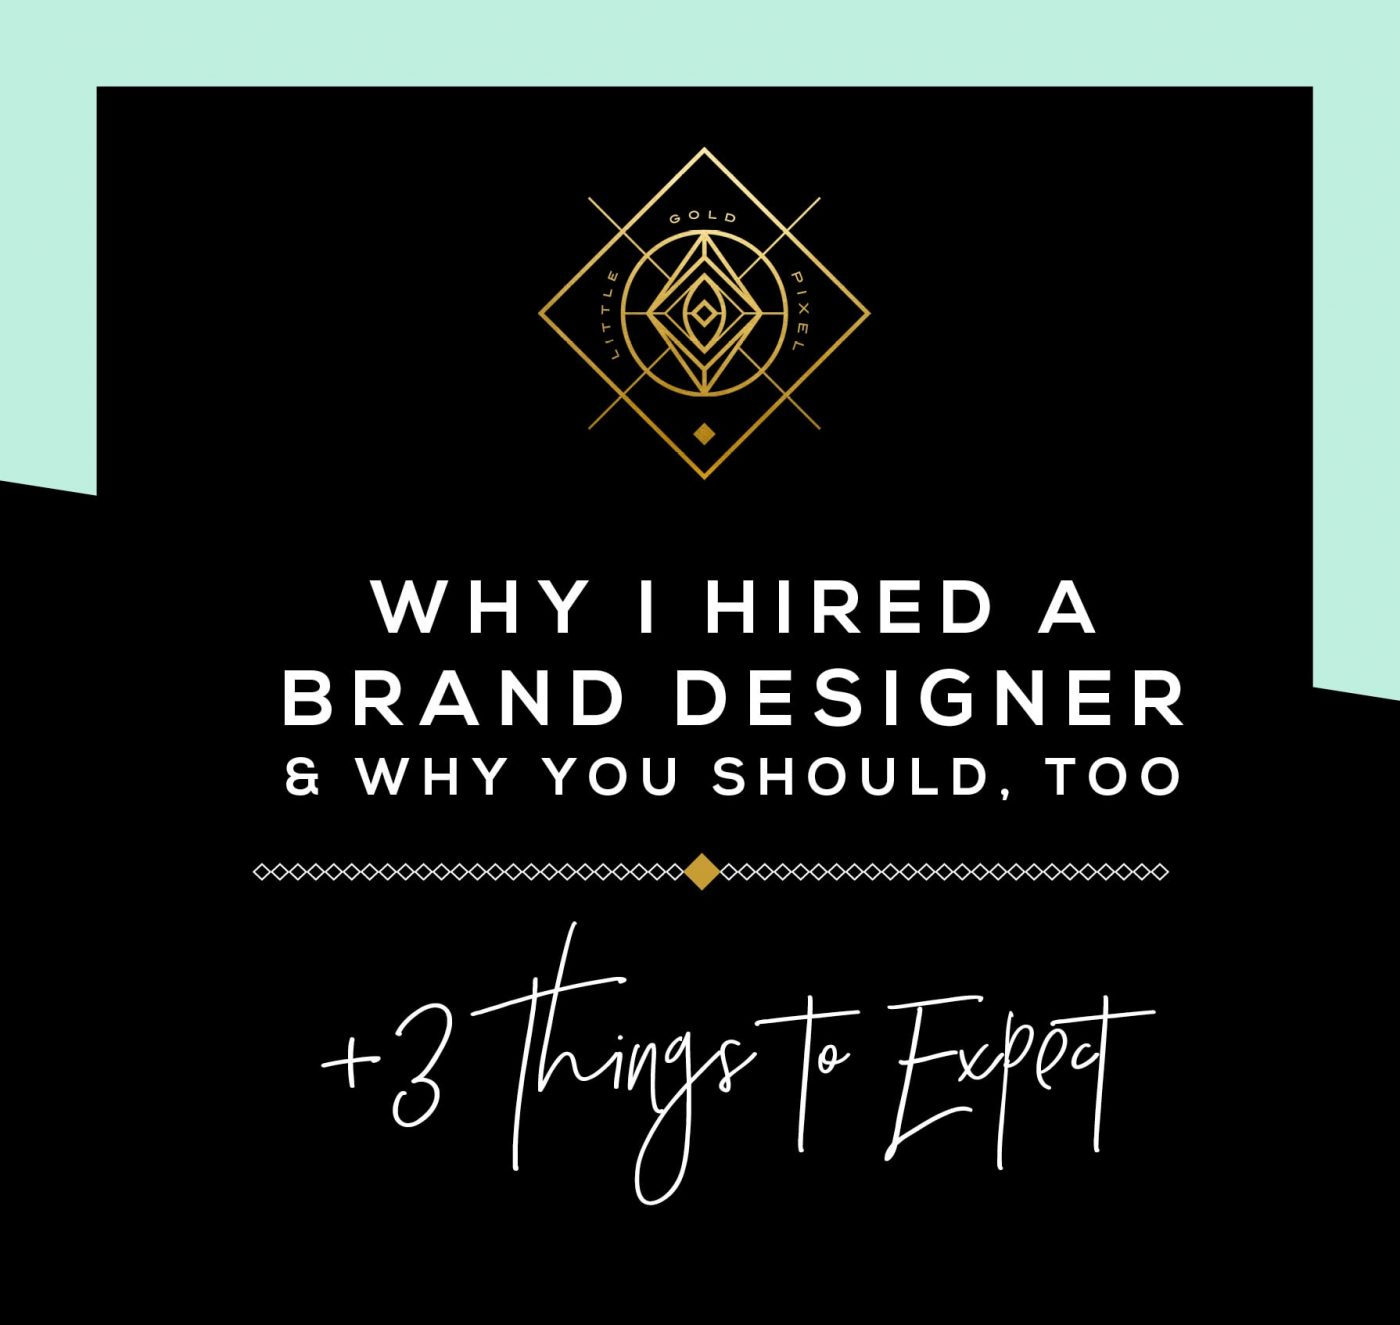 Why I Hired a Brand Designer • Little Gold Pixel